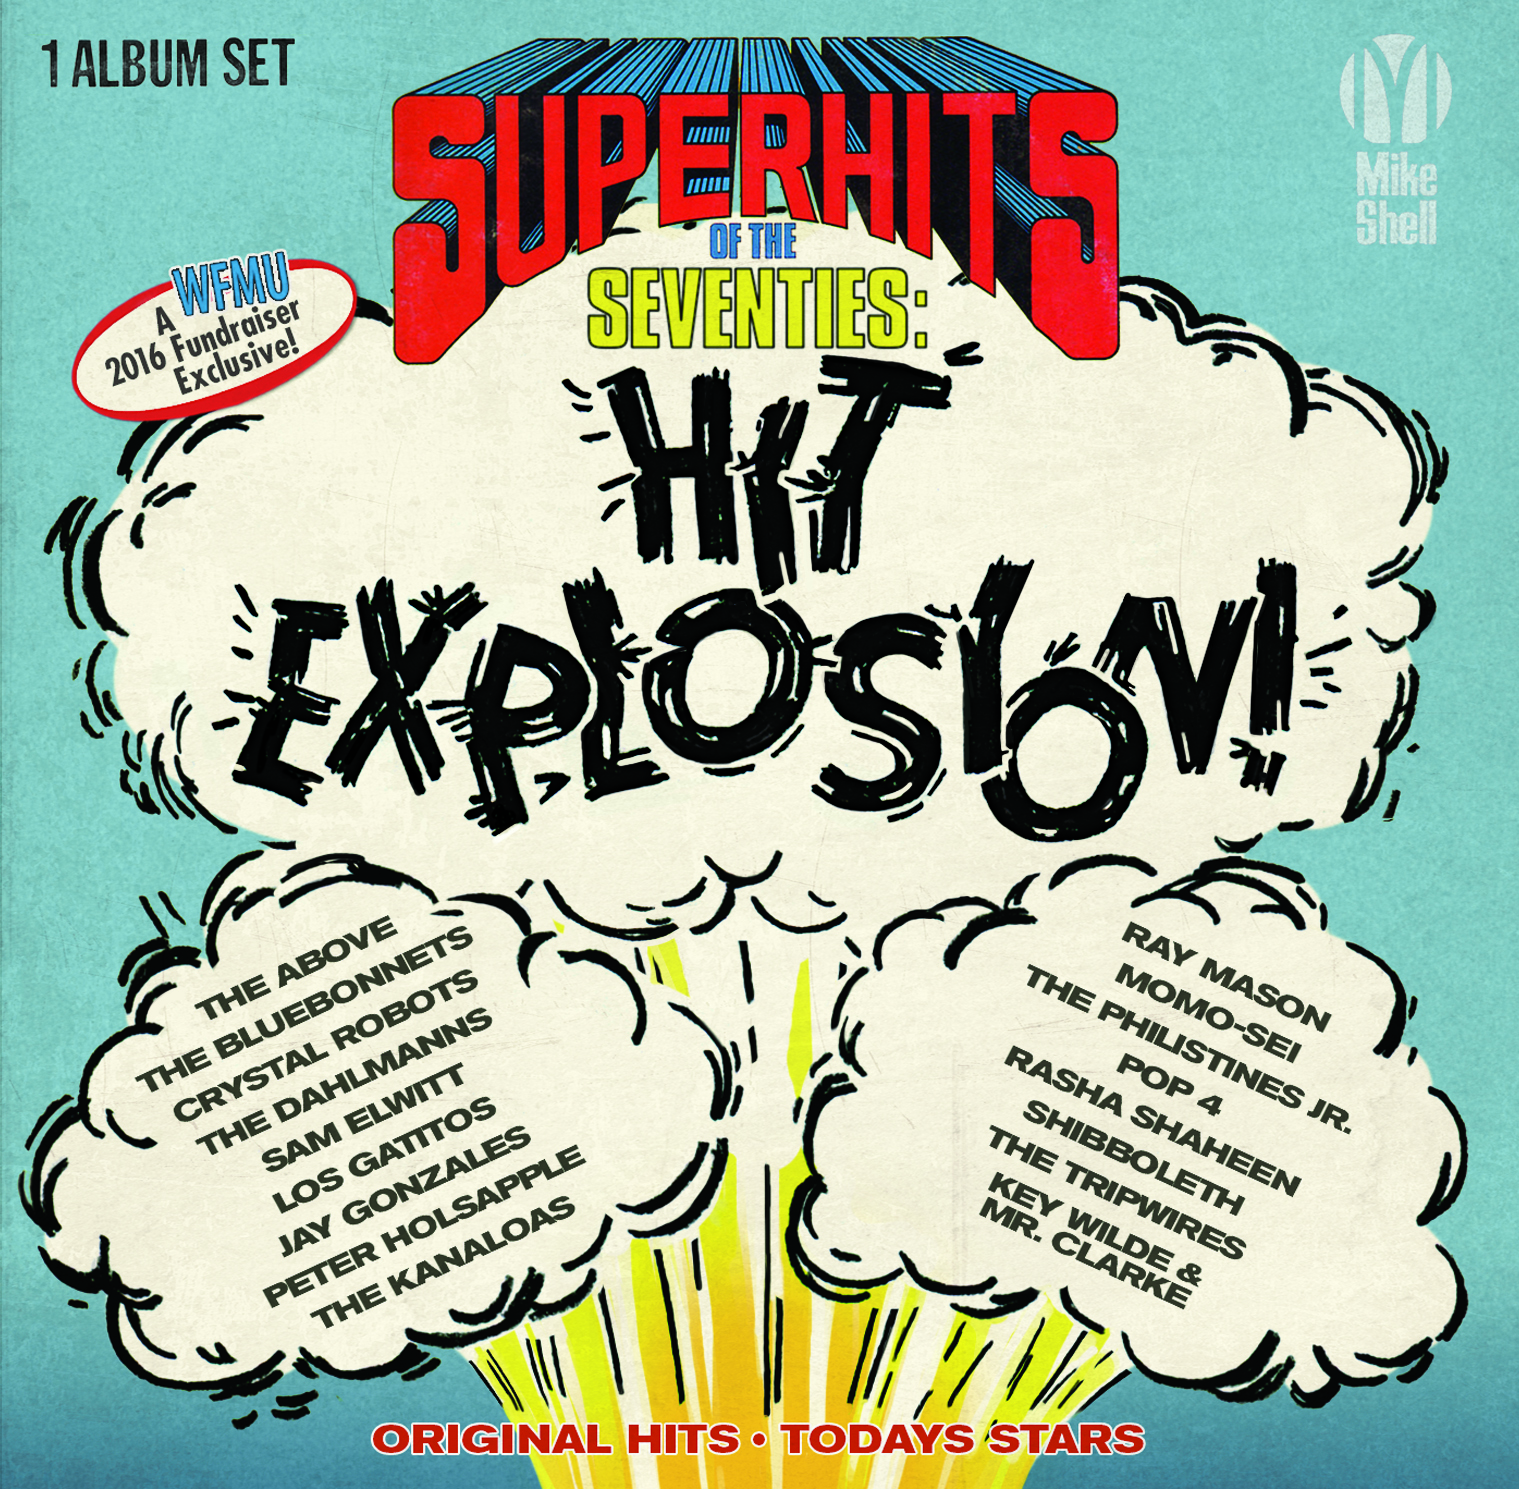 WFMU's Super Hits of the Seventies: Hit Explosion!